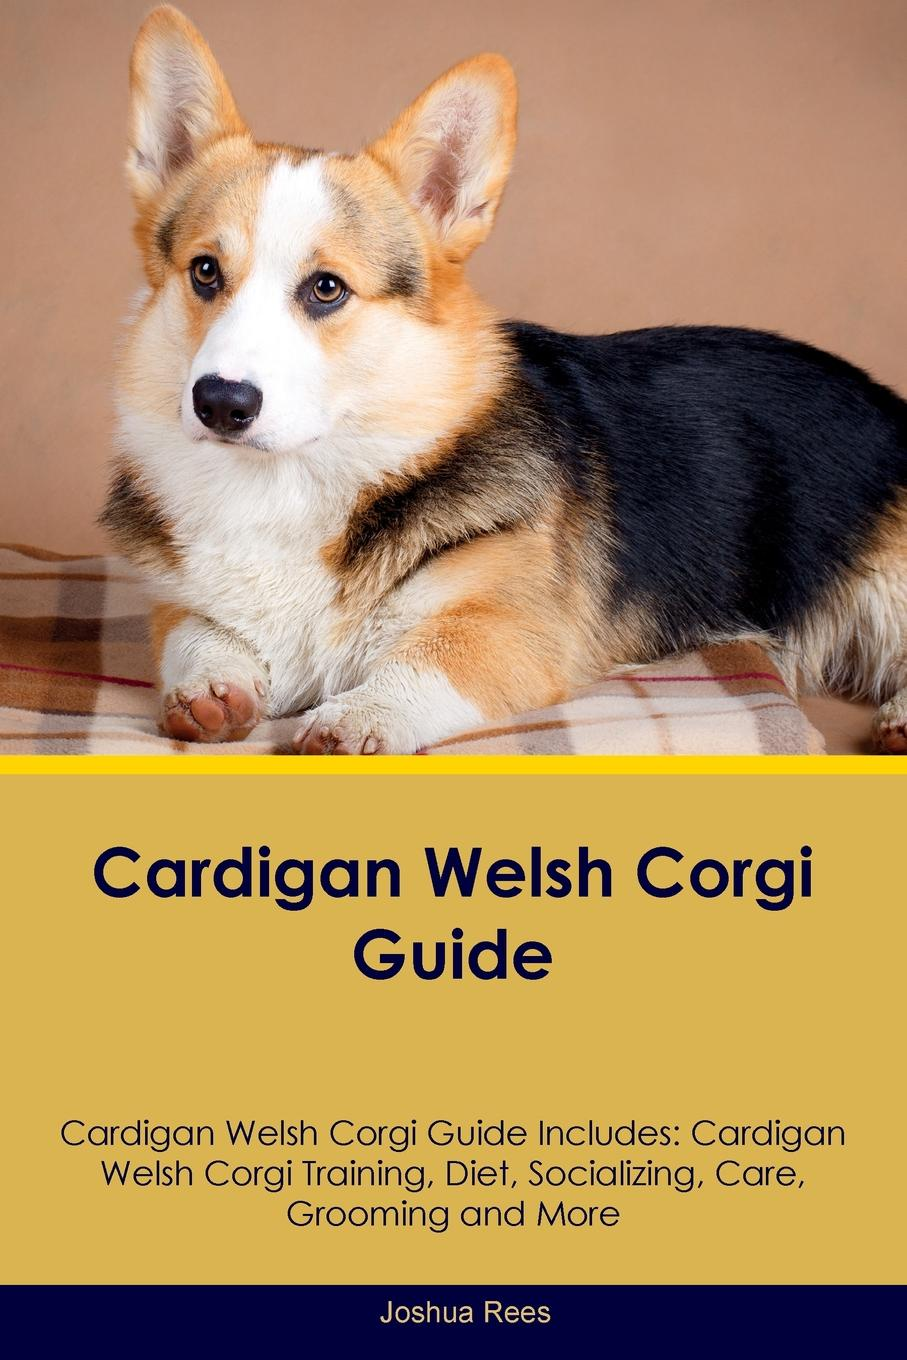 Joshua Rees Cardigan Welsh Corgi Guide Cardigan Welsh Corgi Guide Includes. Cardigan Welsh Corgi Training, Diet, Socializing, Care, Grooming, Breeding and More t jones a guide to welsh part i